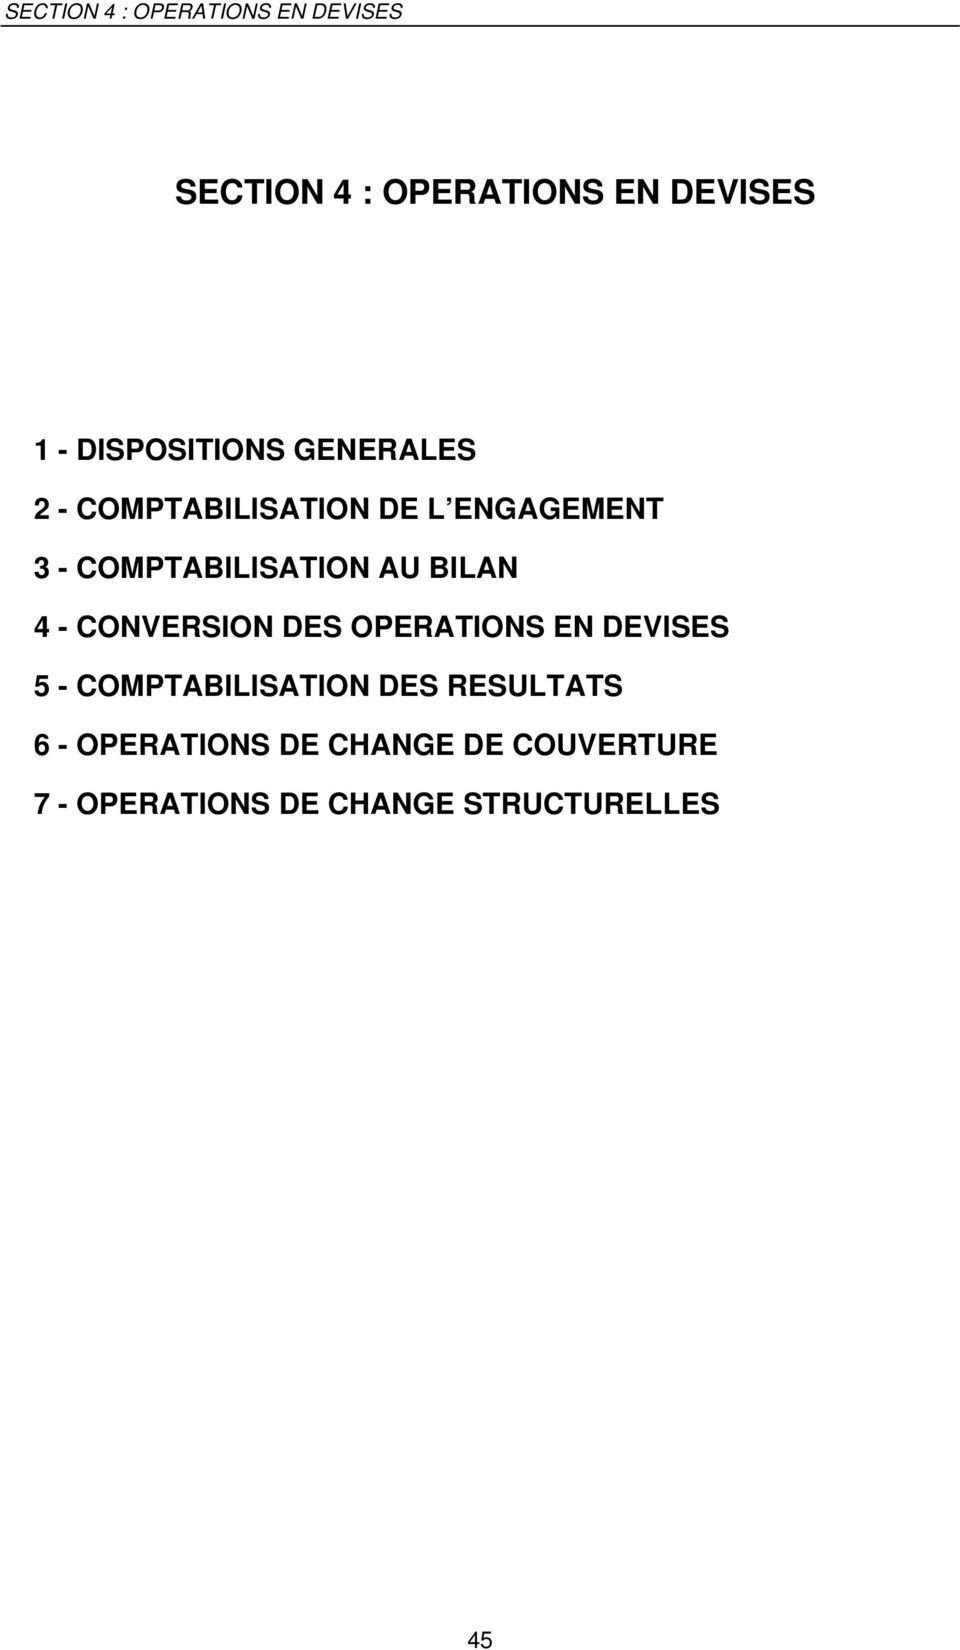 CONVERSION DES OPERATIONS EN DEVISES 5 - COMPTABILISATION DES